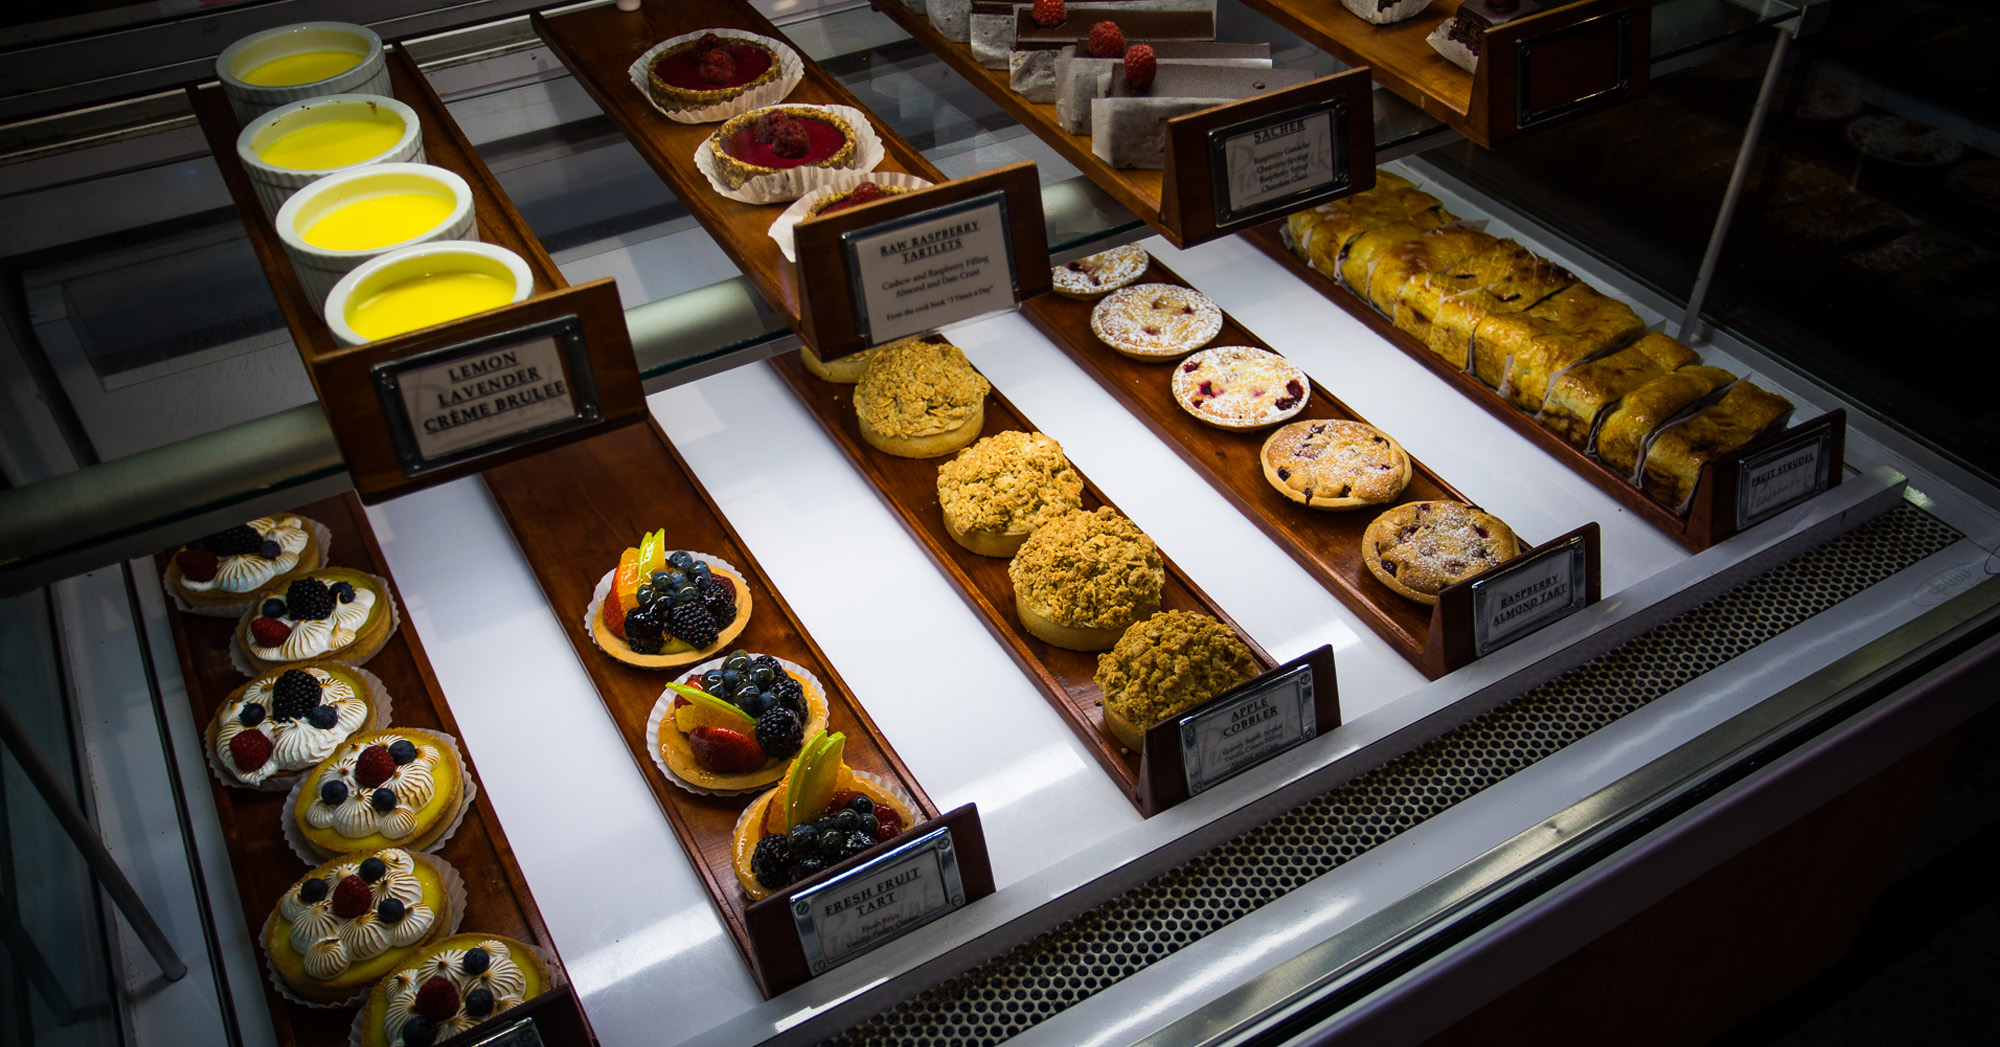 Several pastries